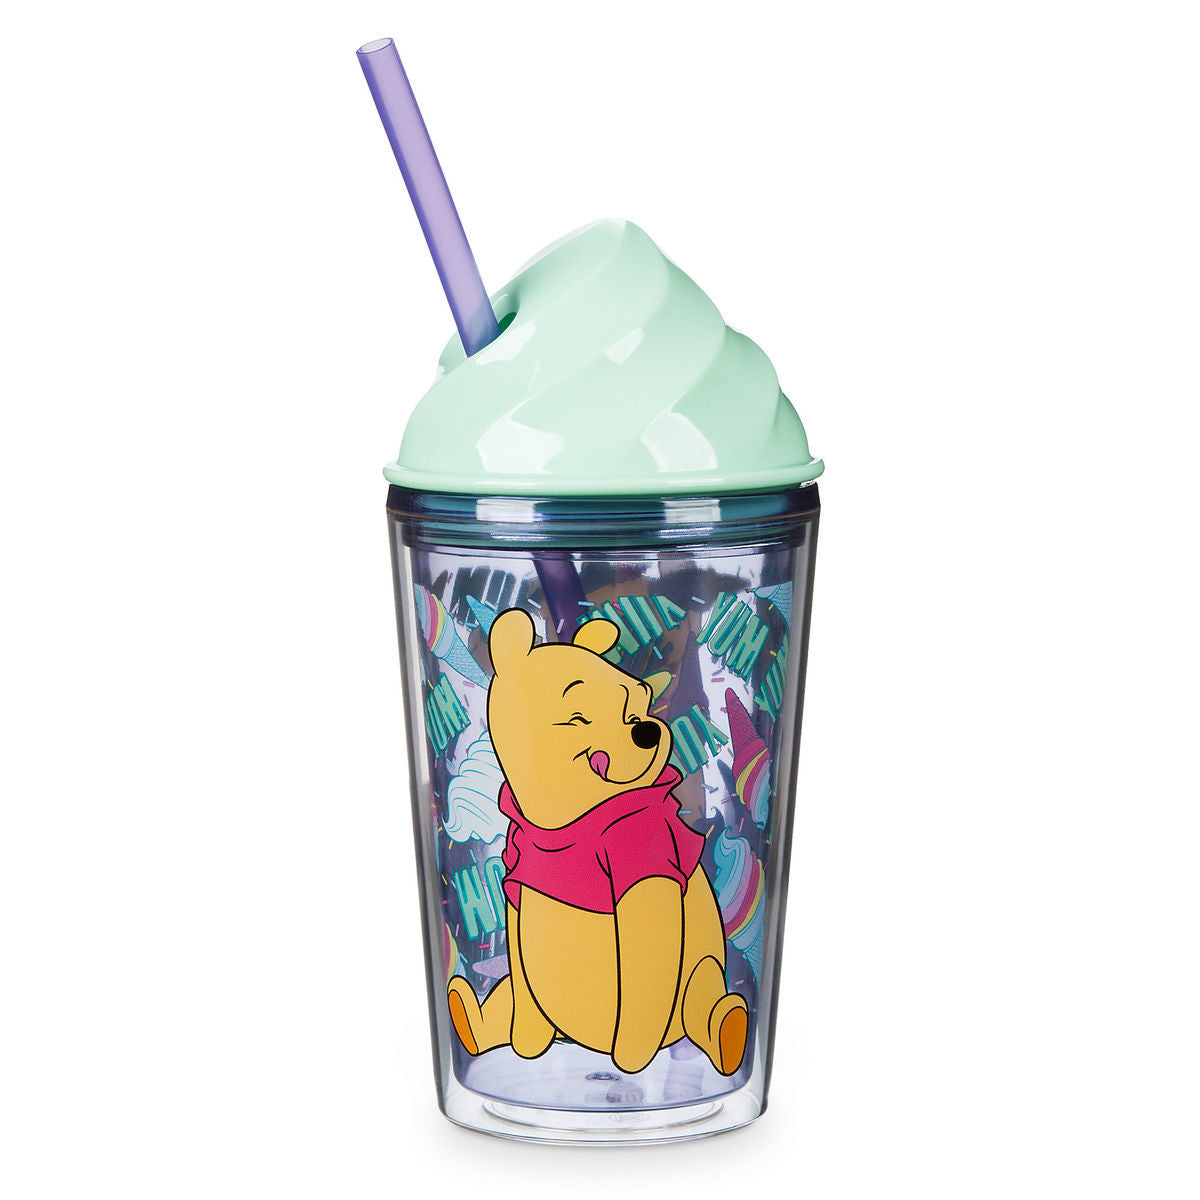 Winnie the Pooh Ice Cream Dome Tumbler with Straw